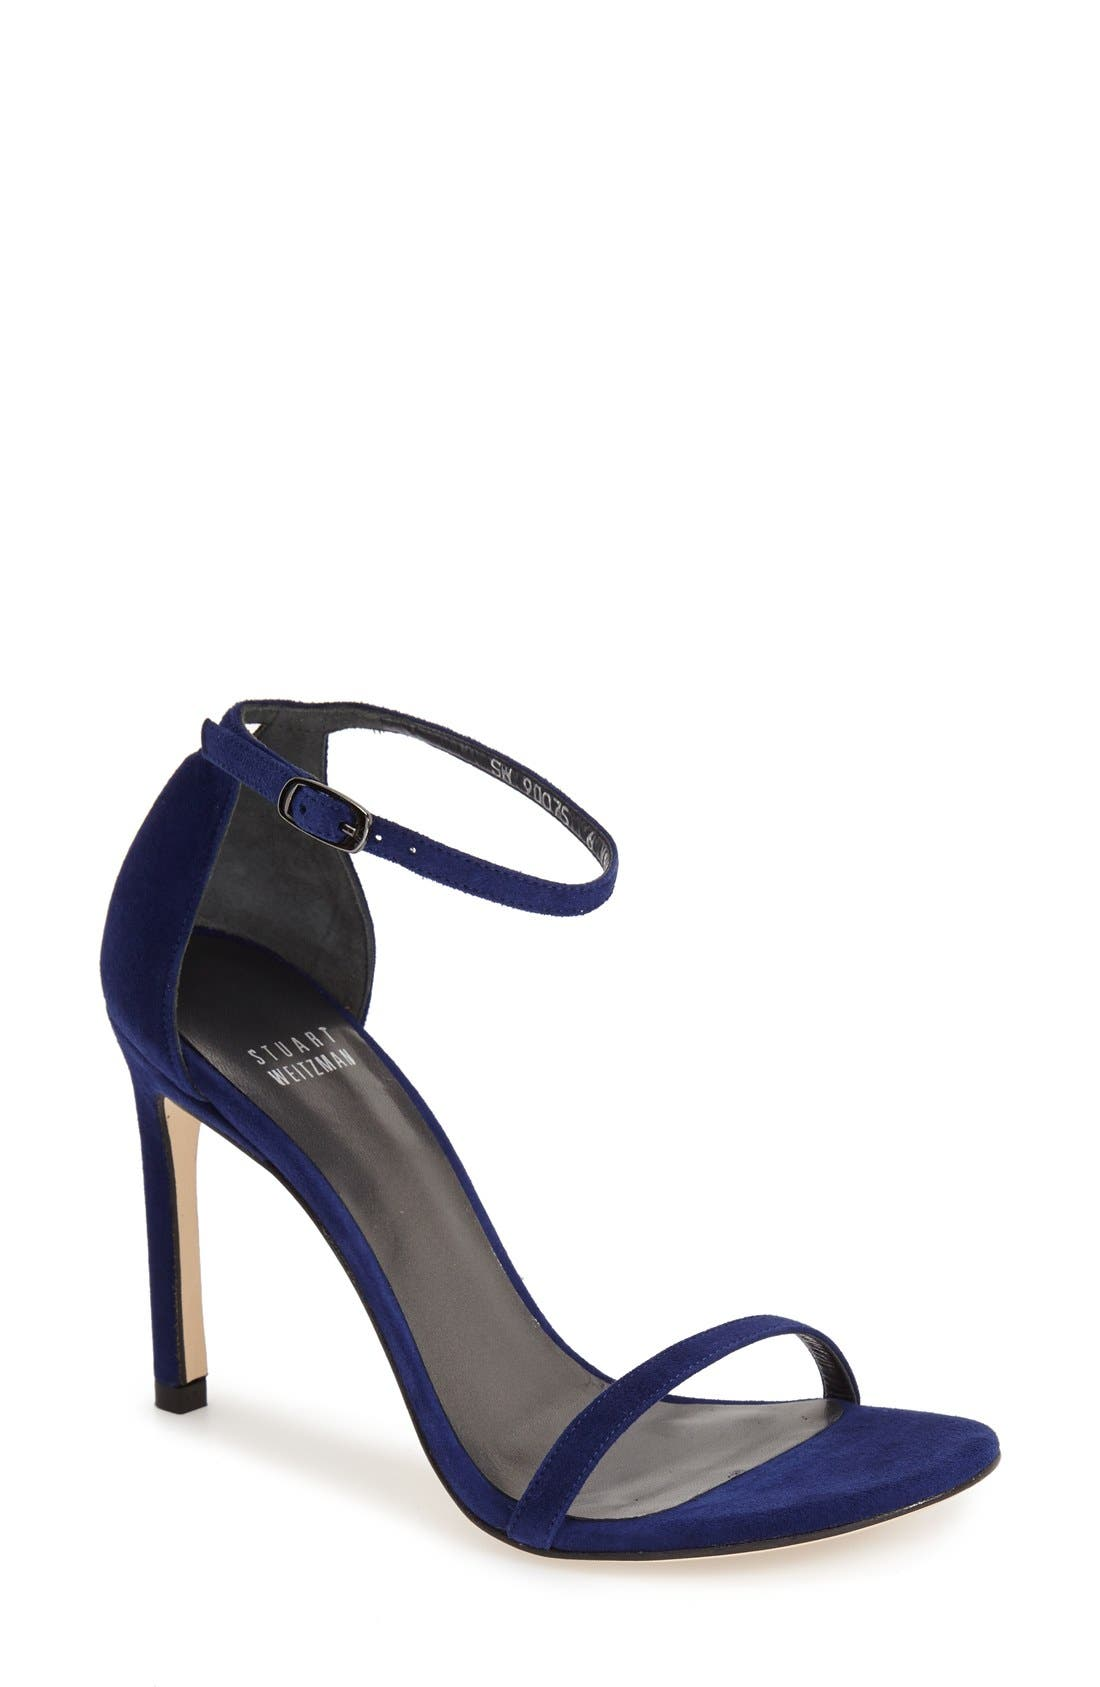 Nudistsong Ankle Strap Sandal,                             Main thumbnail 27, color,